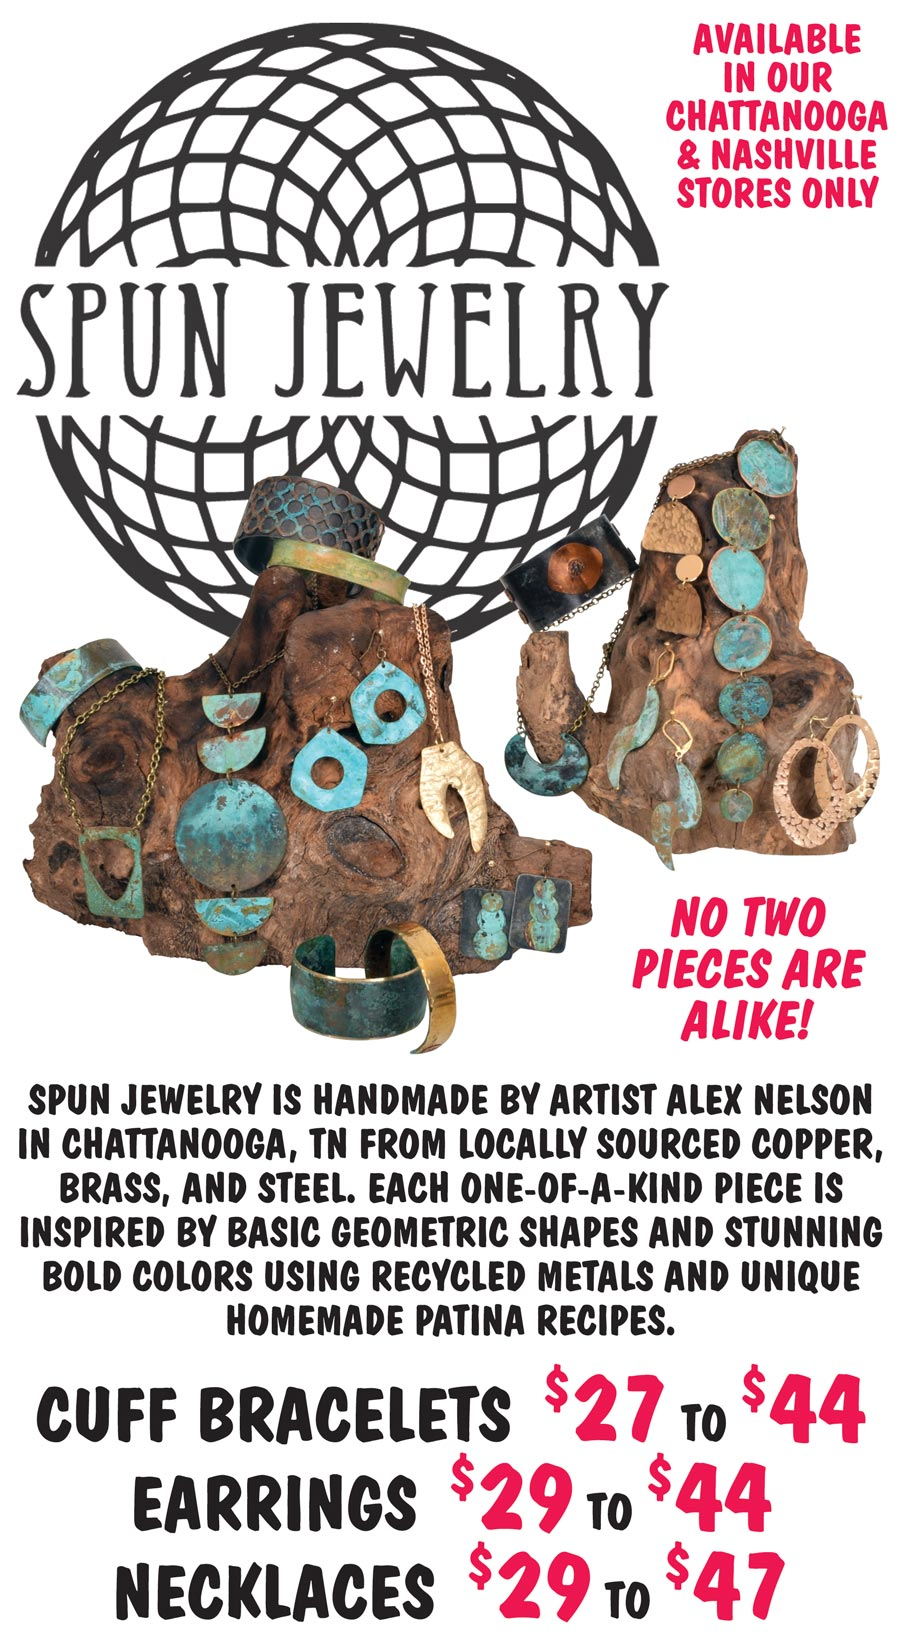 Handcrafted Spun Jewelry made by Chattanooga artist Alex Nelson - Earrings, Necklaces, and Bracelets